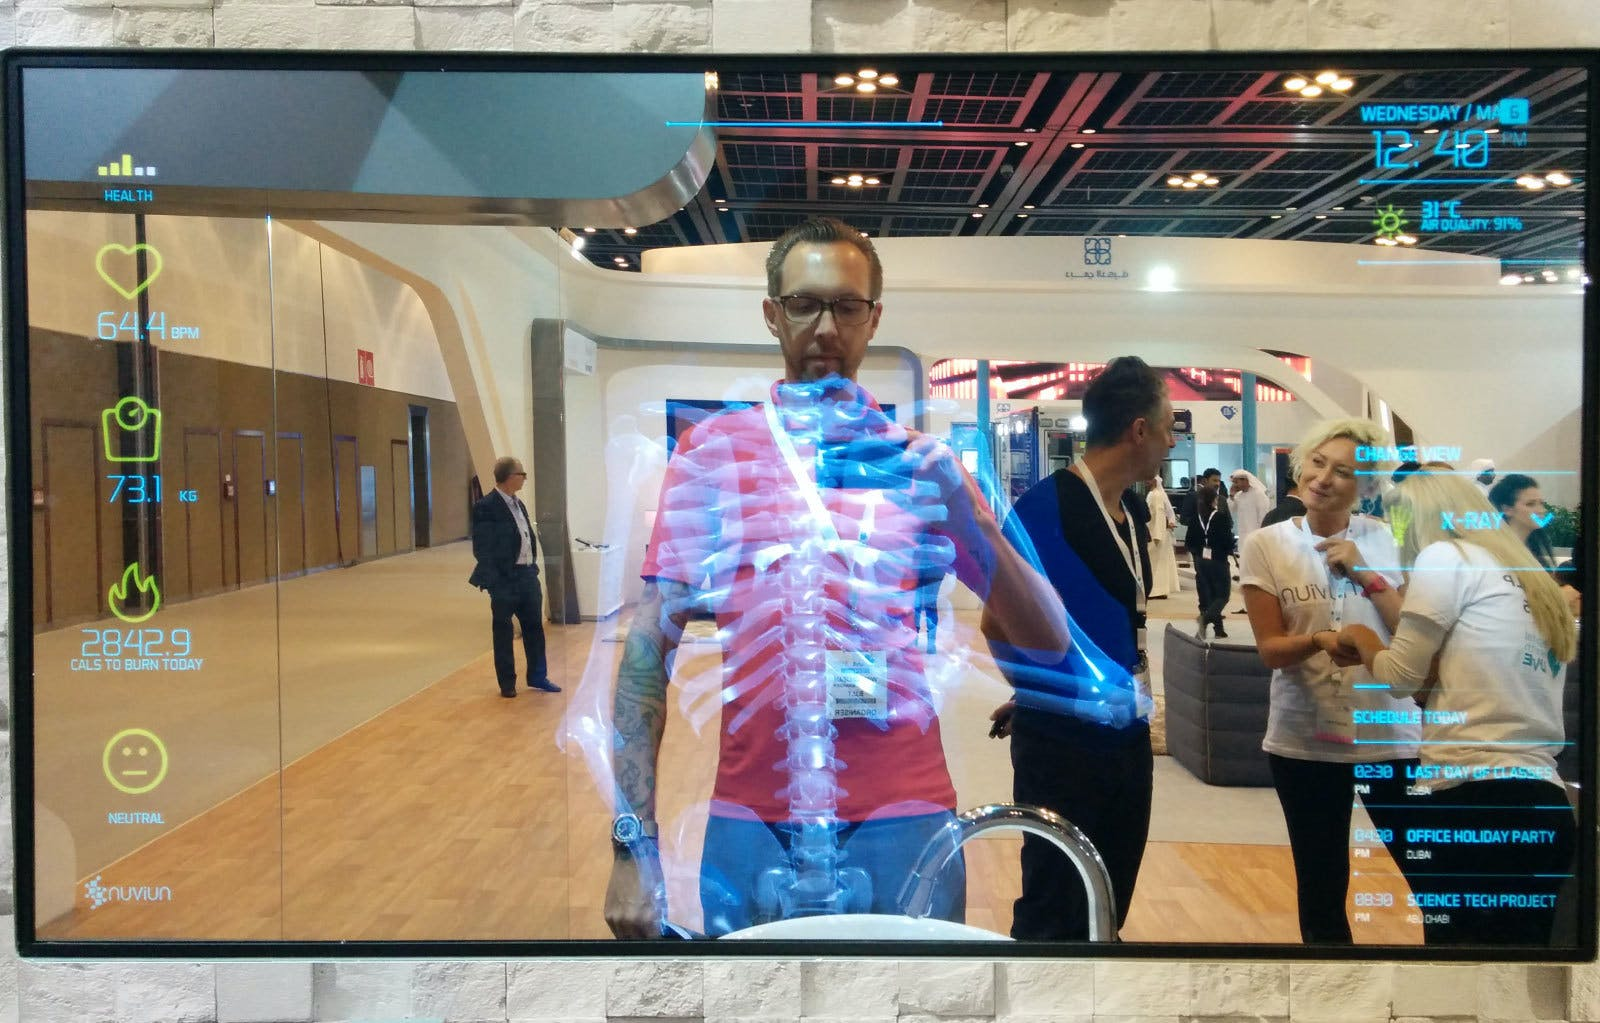 Health mirror at Digital Health fair